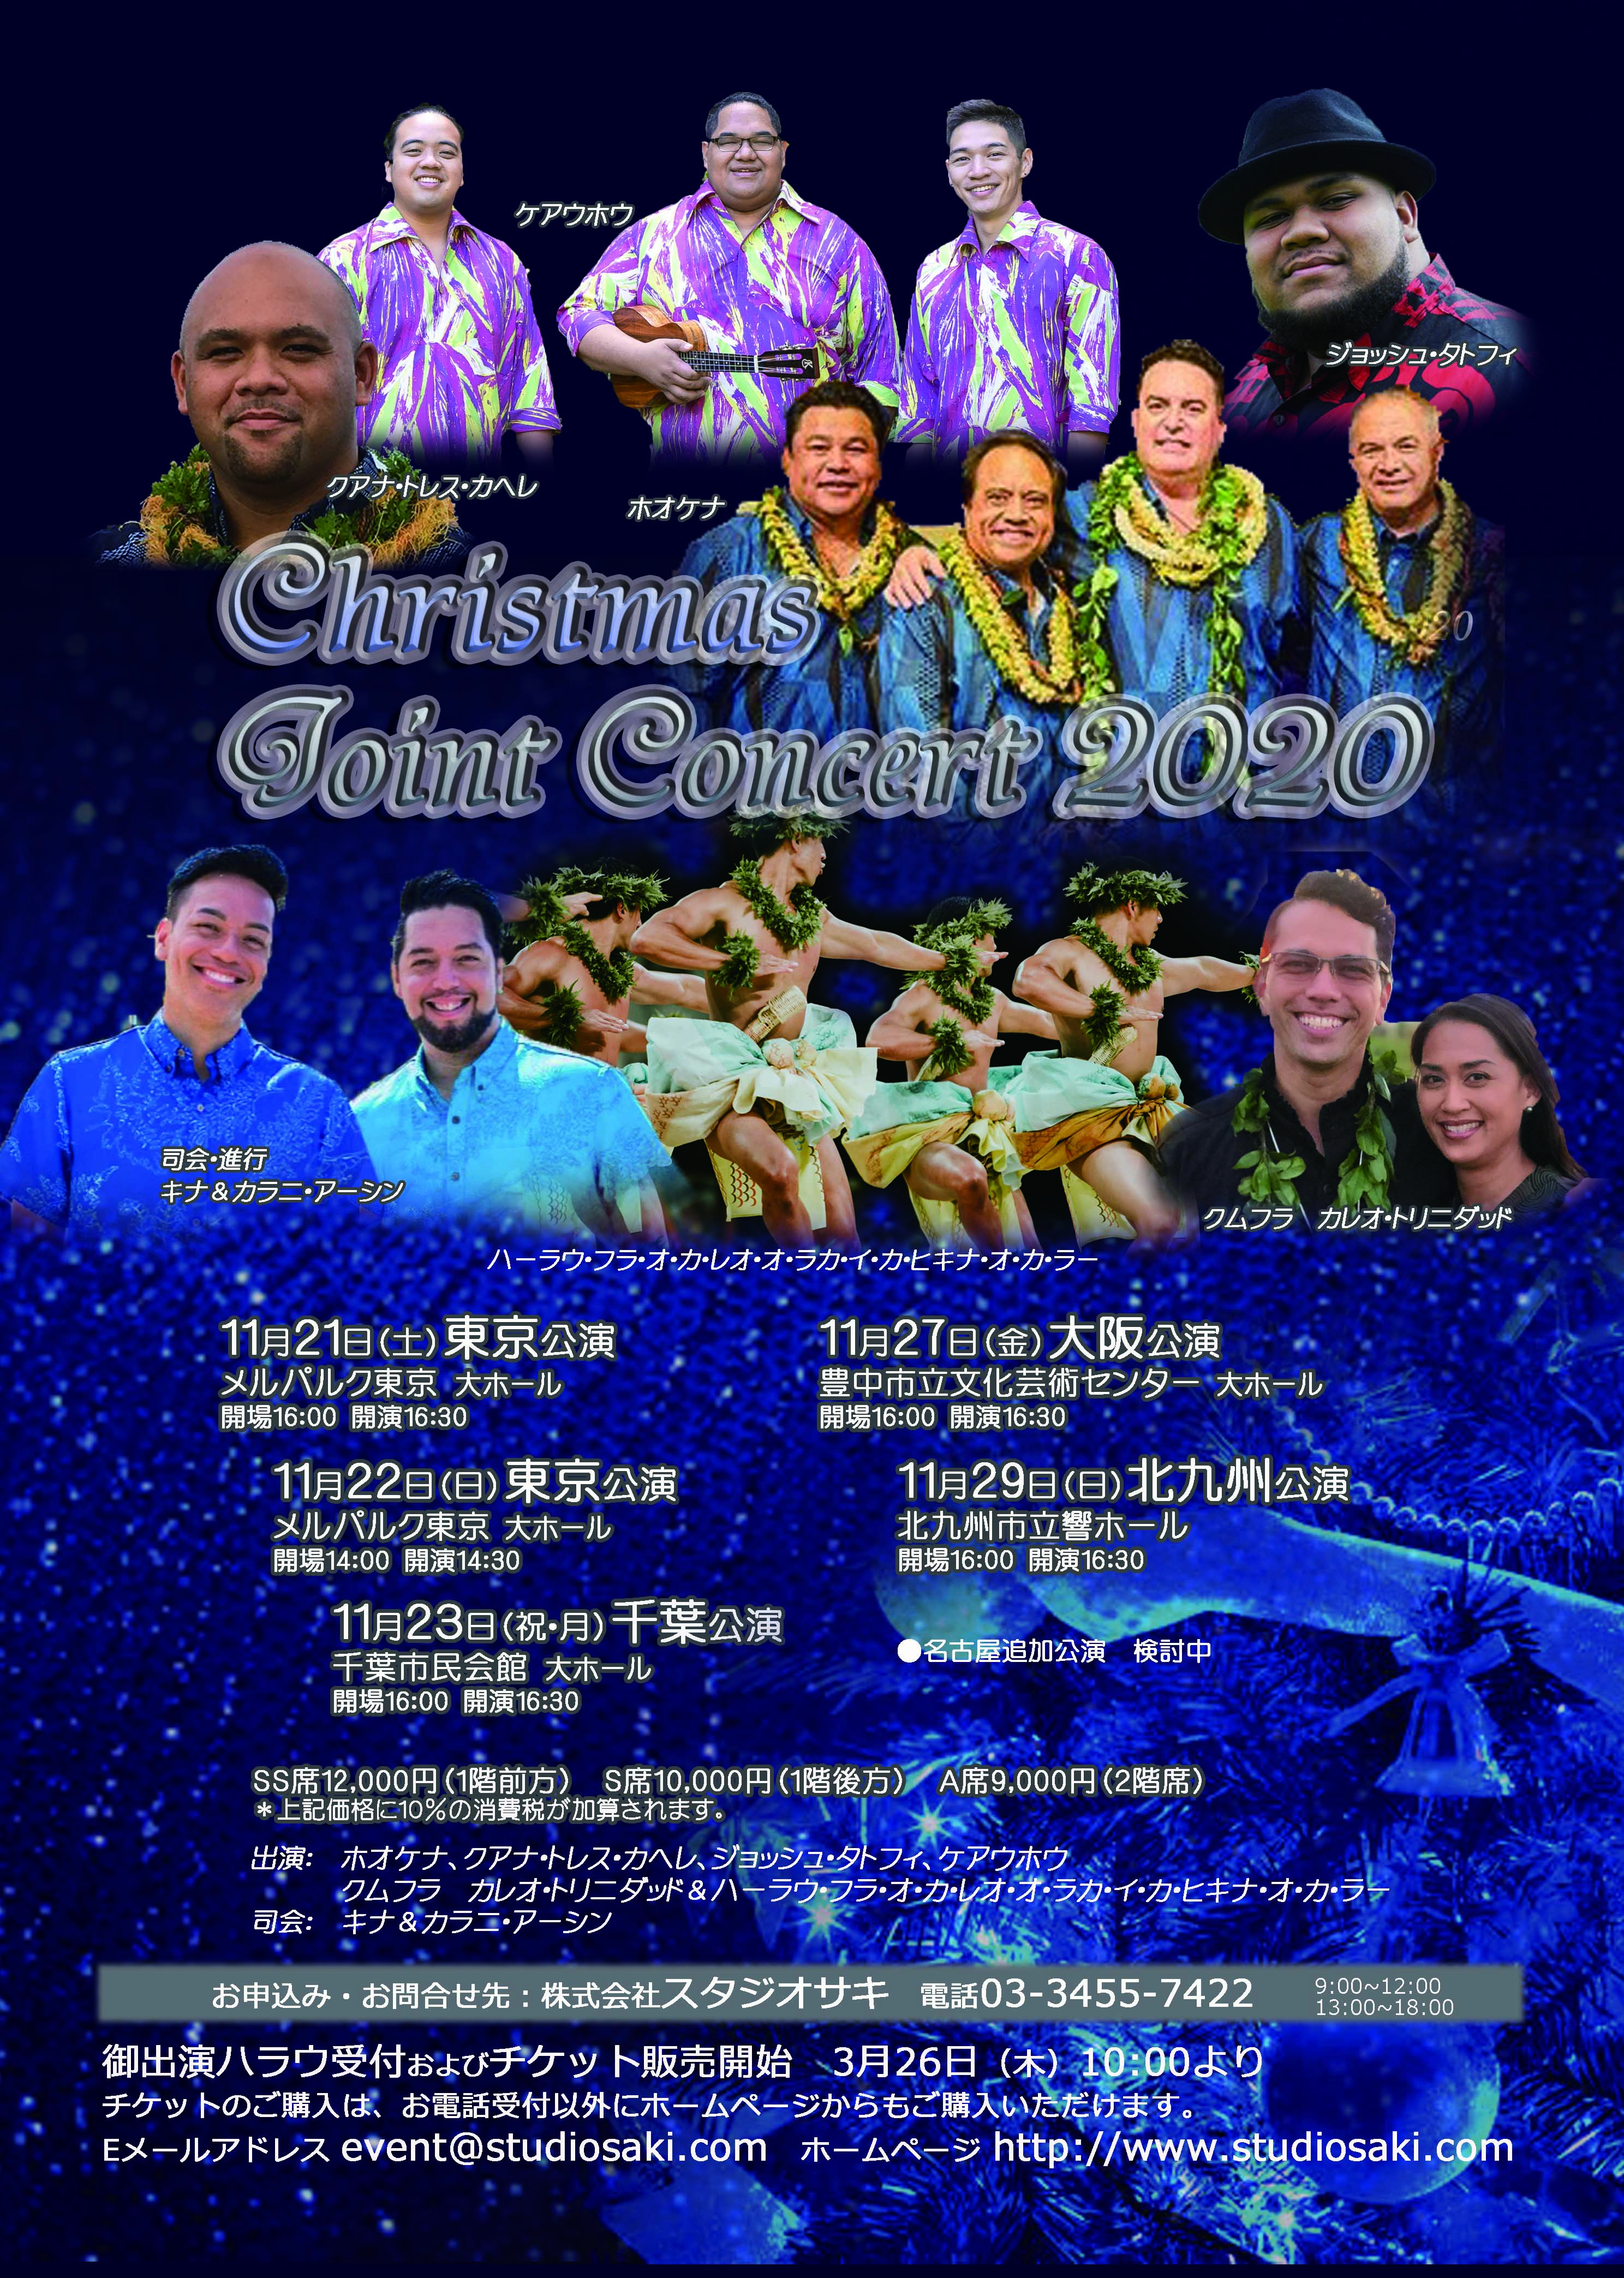 Christmas Joint Concert 2020